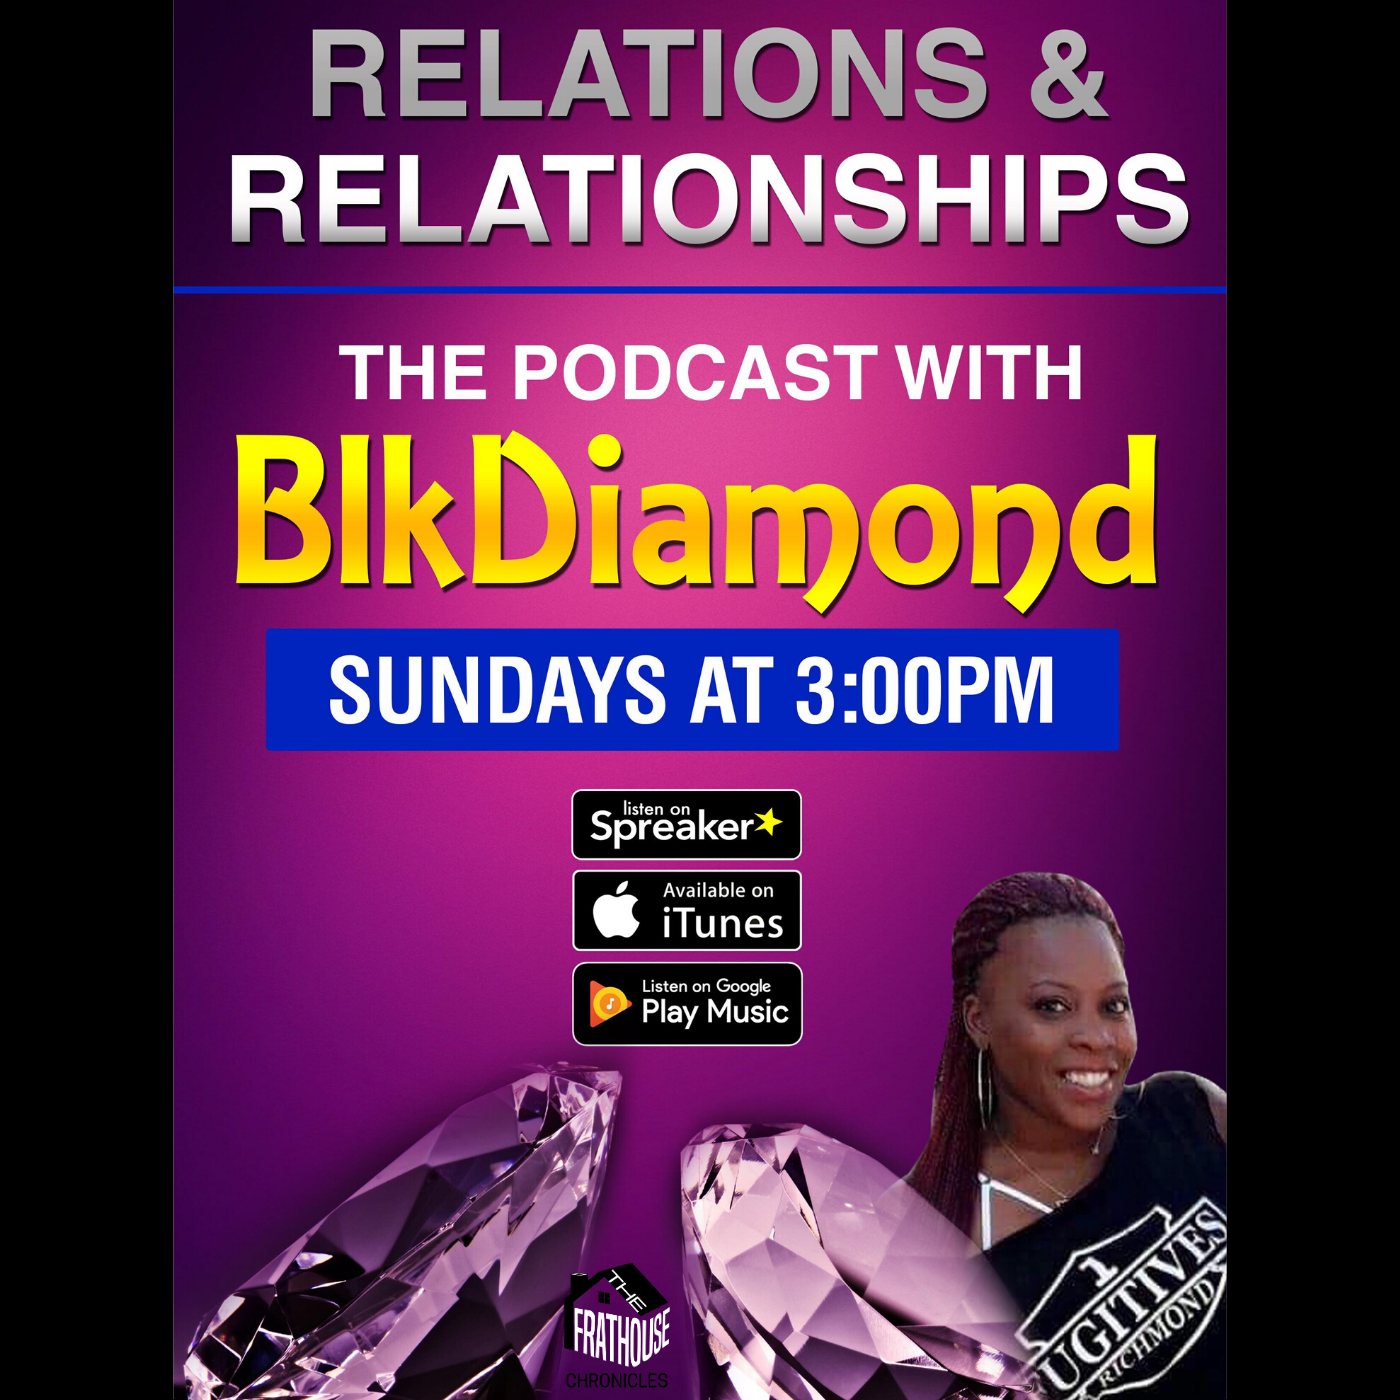 Relations & Relationships